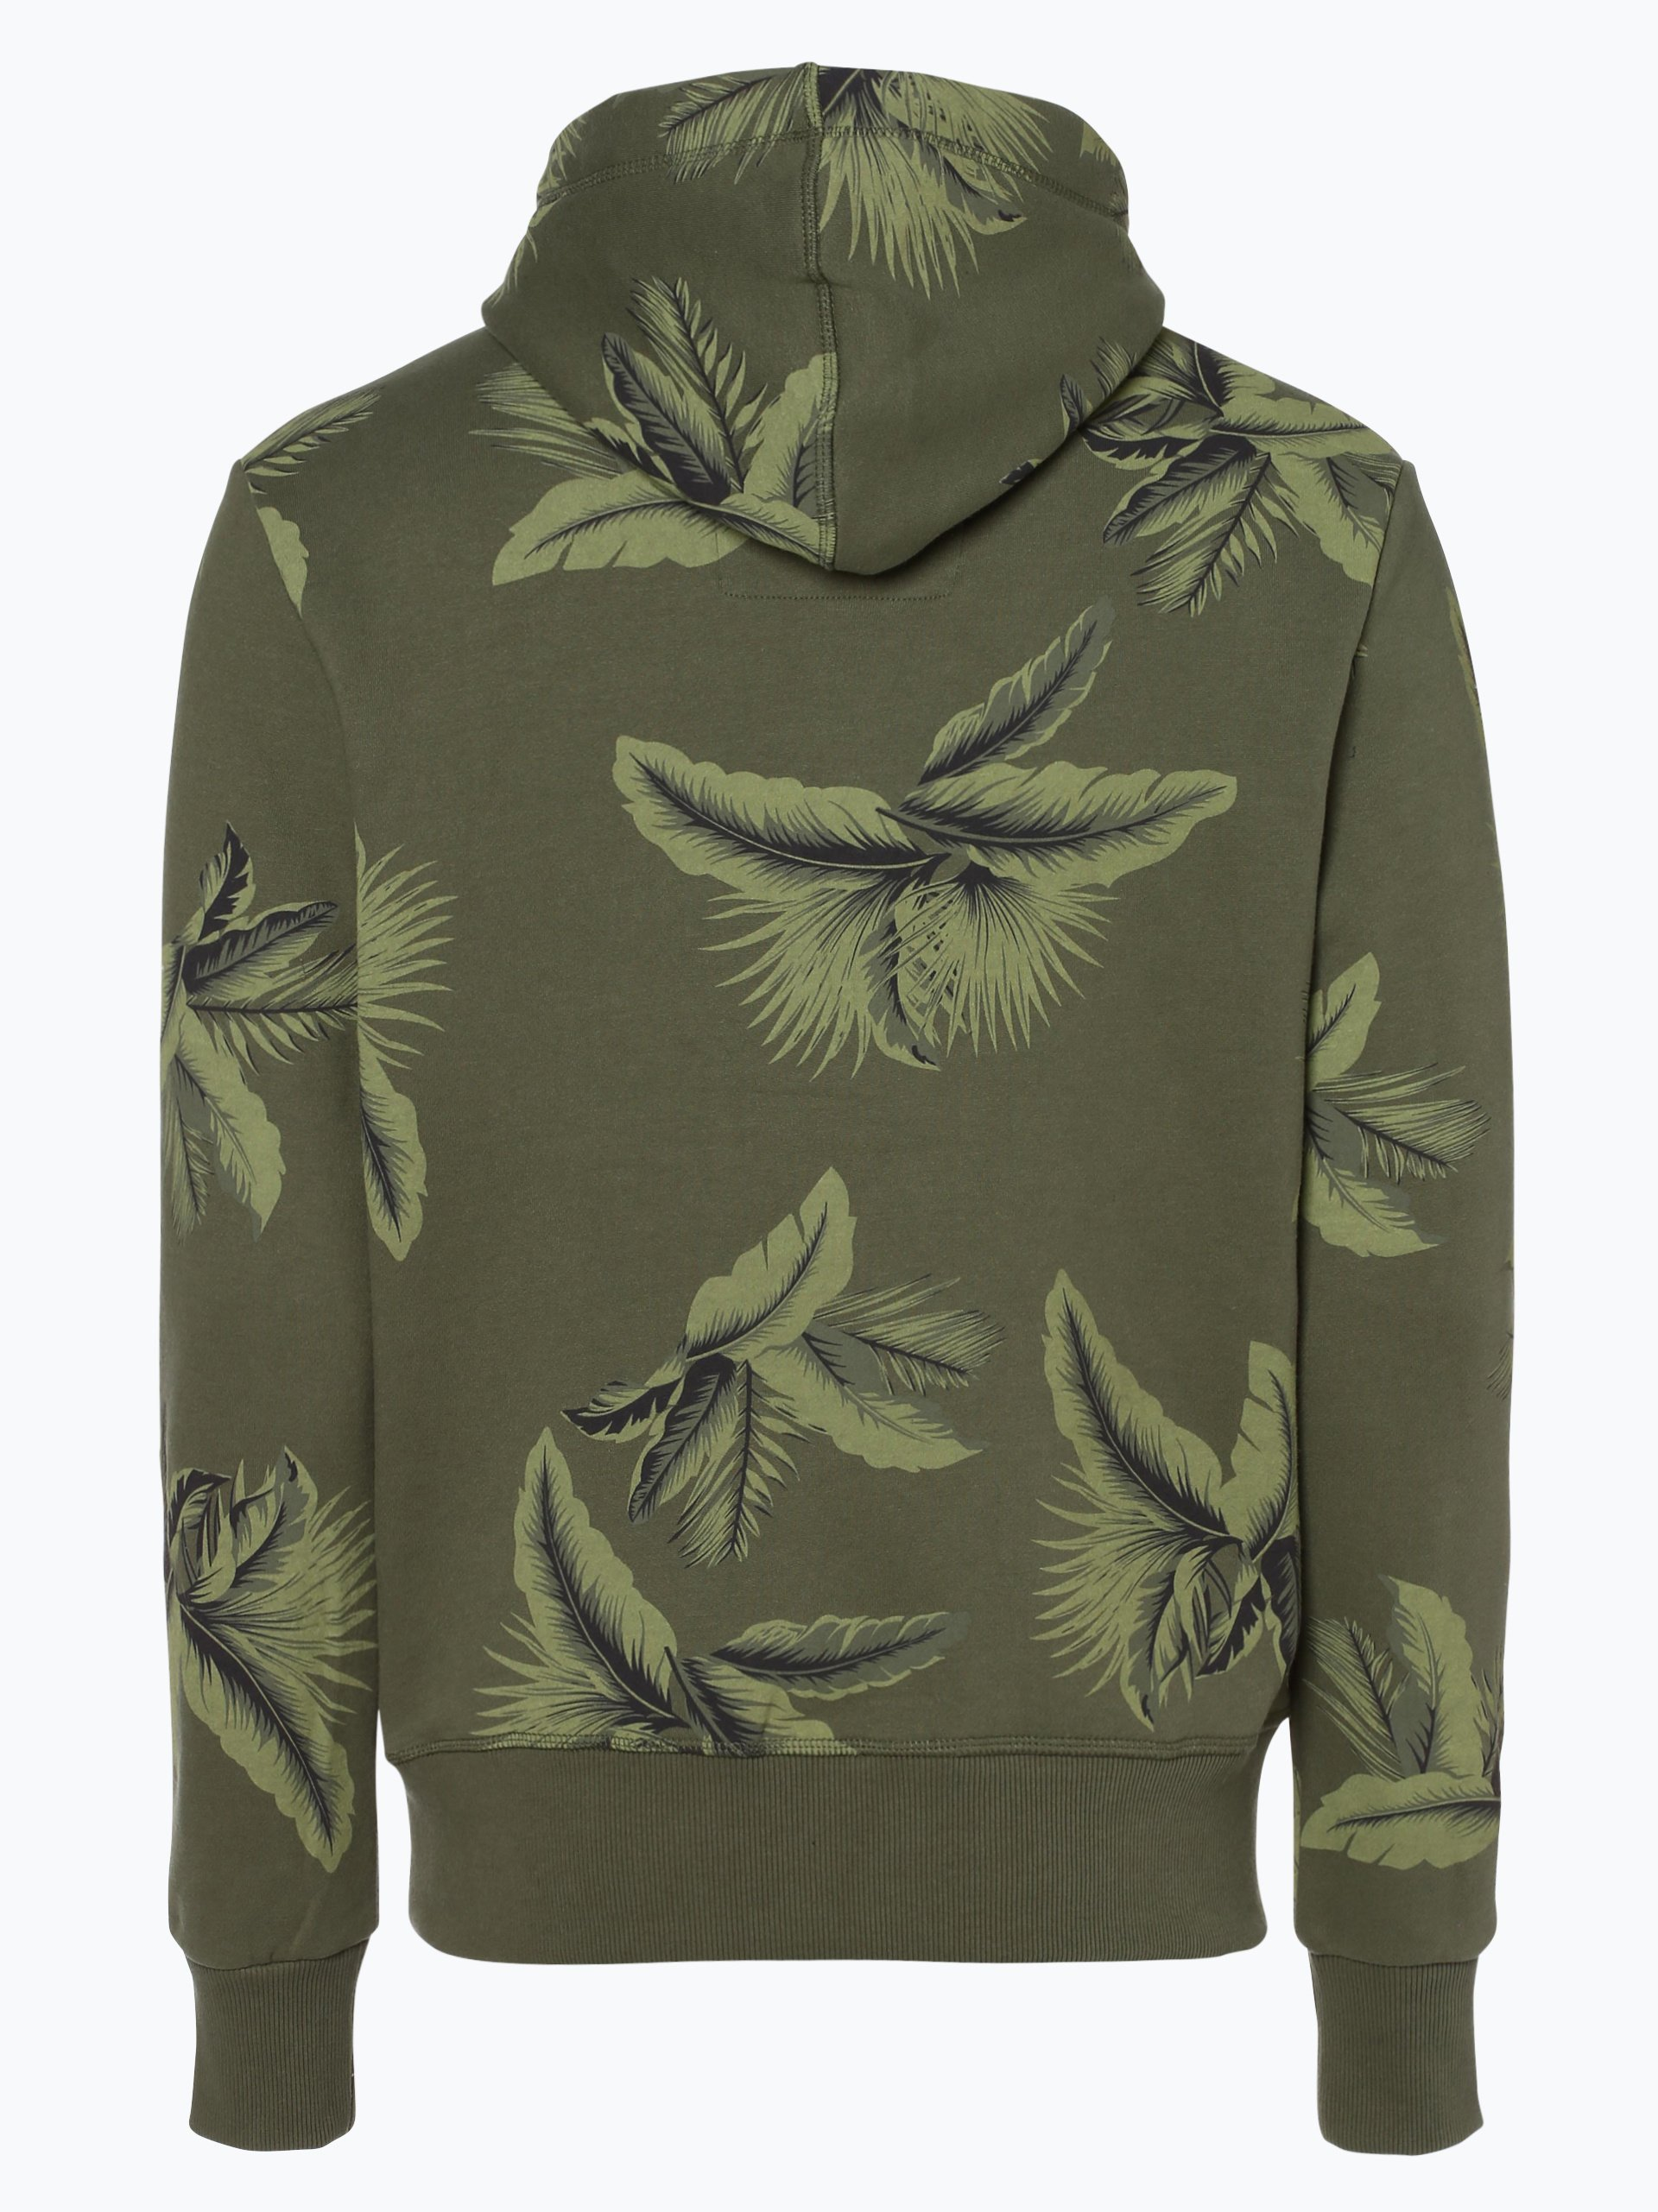 superdry herren sweatshirt oliv gr n gemustert online. Black Bedroom Furniture Sets. Home Design Ideas